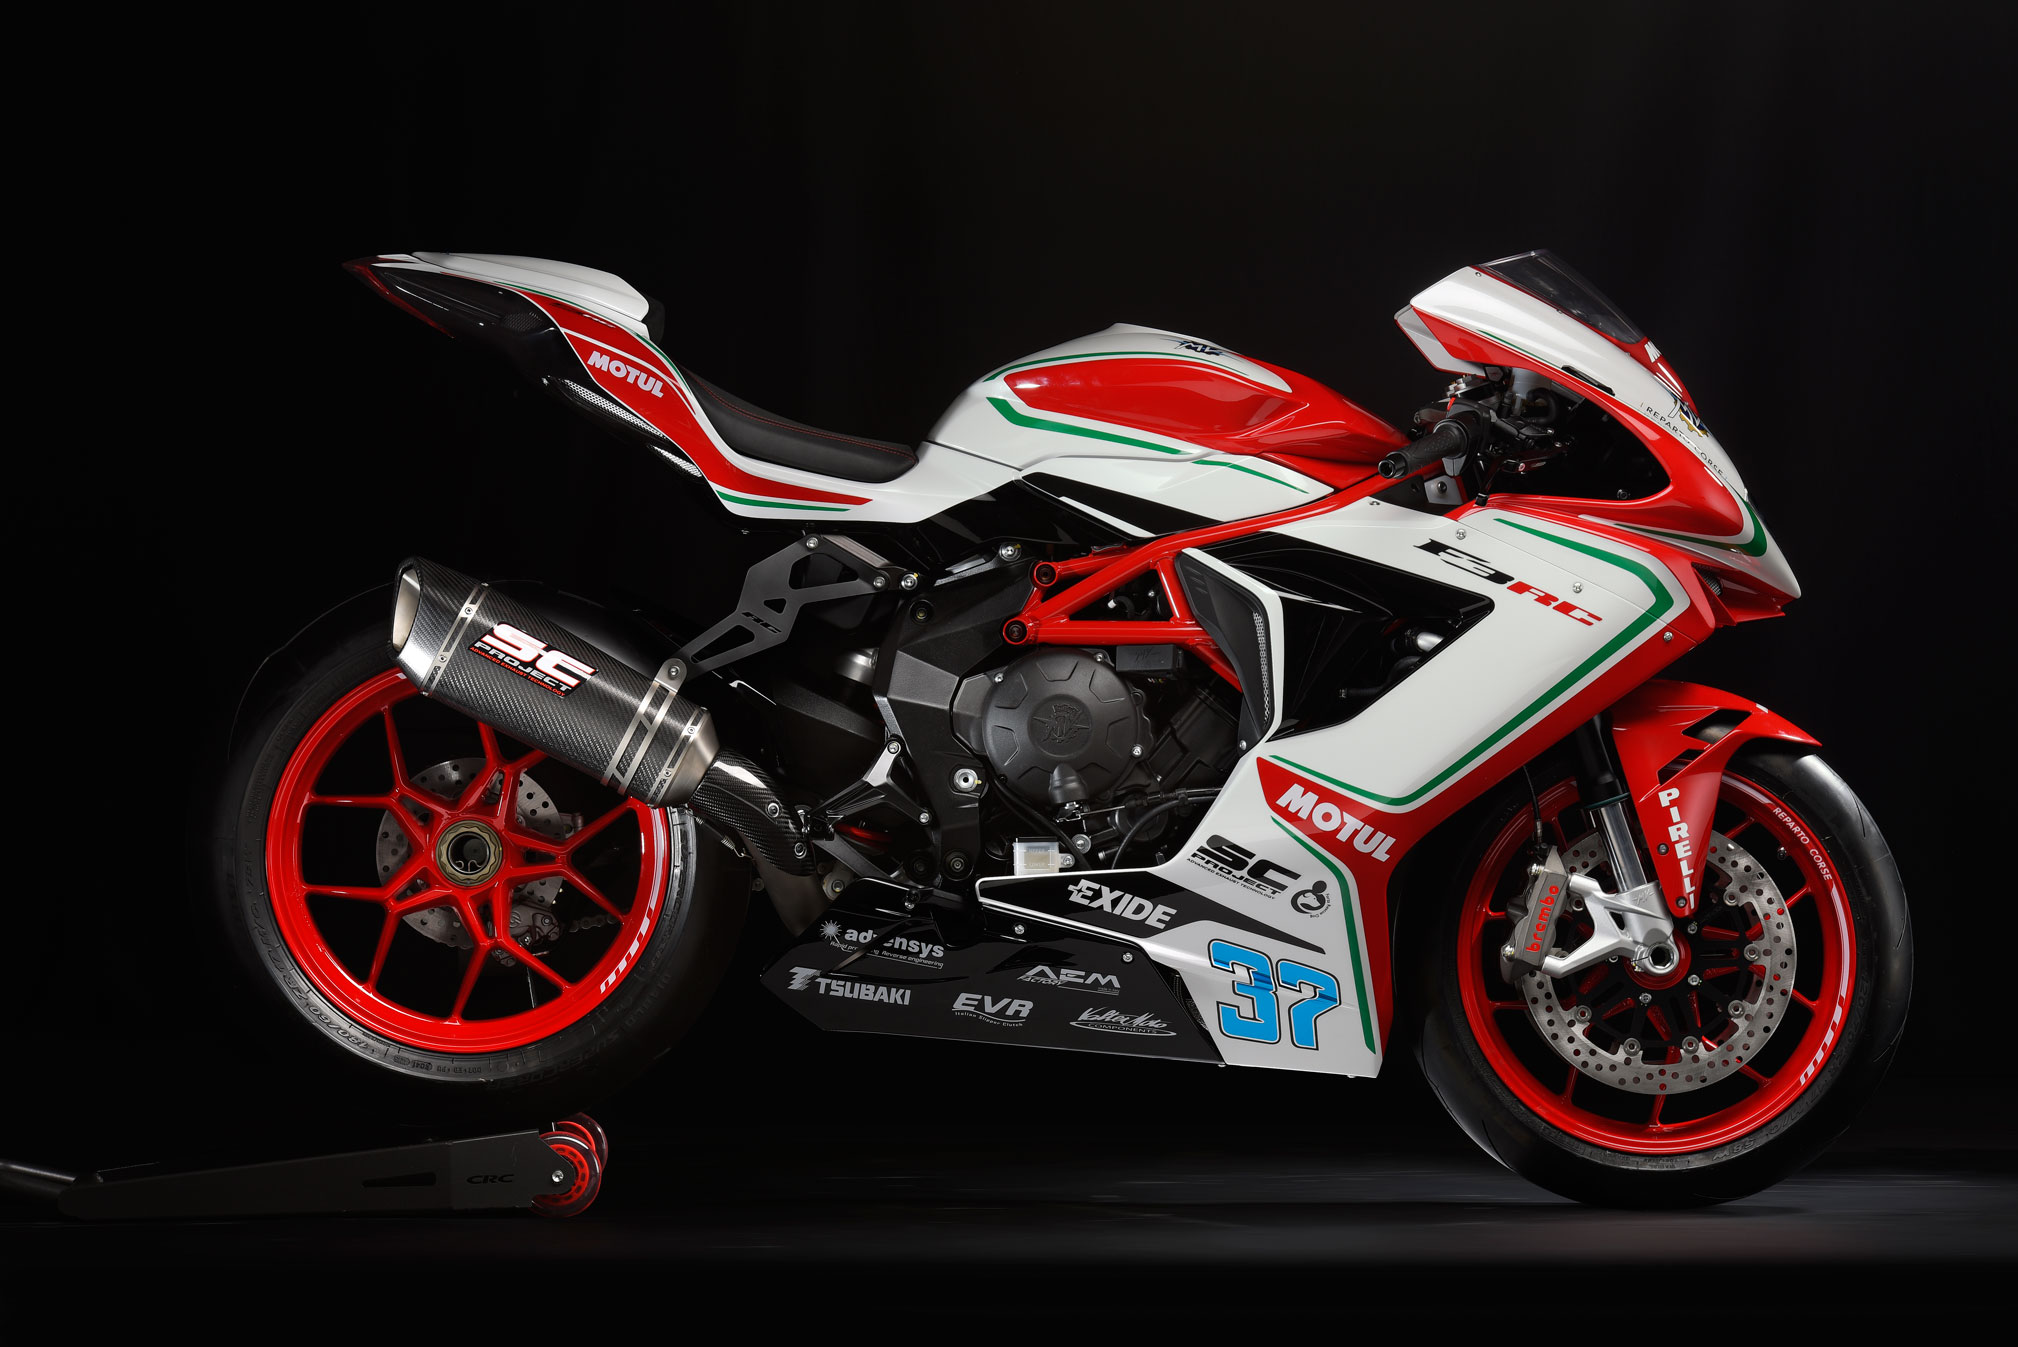 2018 MV Agusta F3 800 RC Review • Total Motorcycle